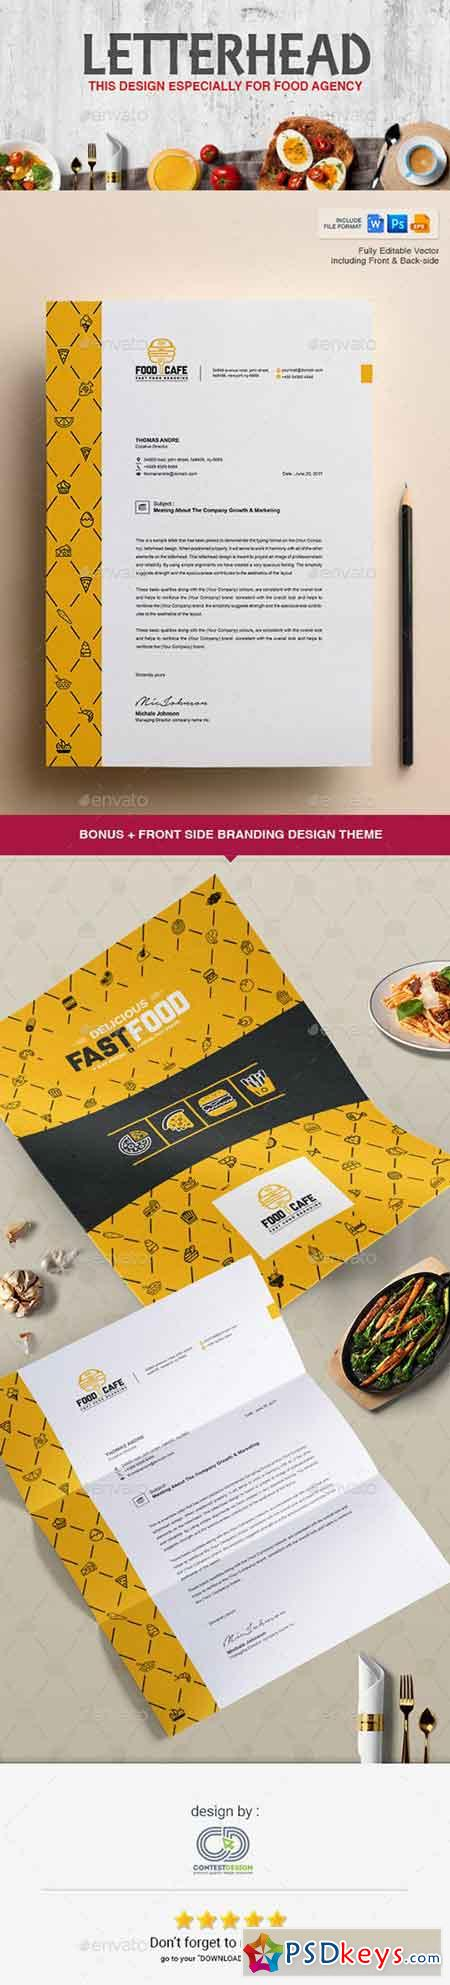 Letterhead Design Template for Fast Food Restaurants Cafe 20308425